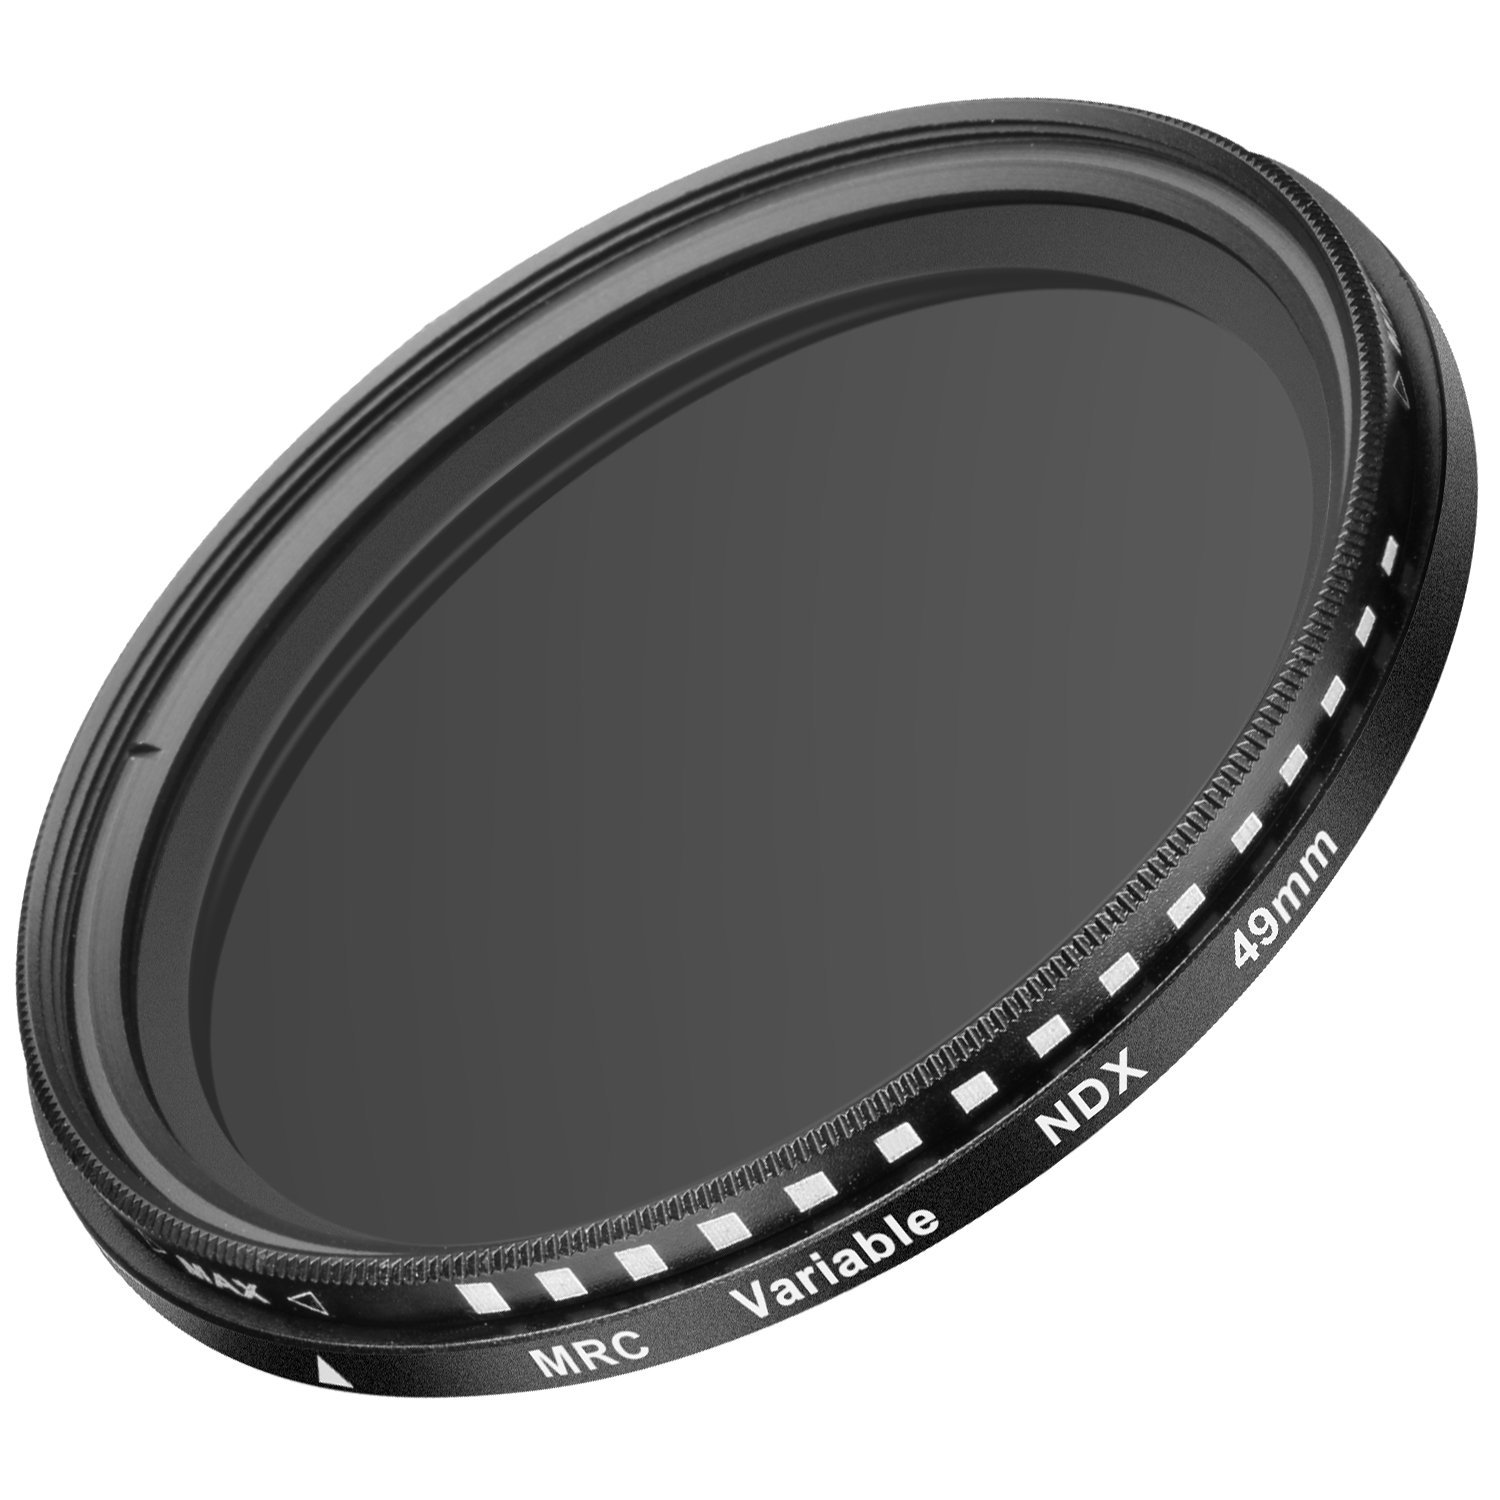 Neewer 49MM Ultra Slim ND2-ND400 Fader Neutral Density Adjustable Lens Filter for Camera Lens with 49MM Filter Thread Size, Made of Optical Glass and Aluminum Alloy Frame by Neewer